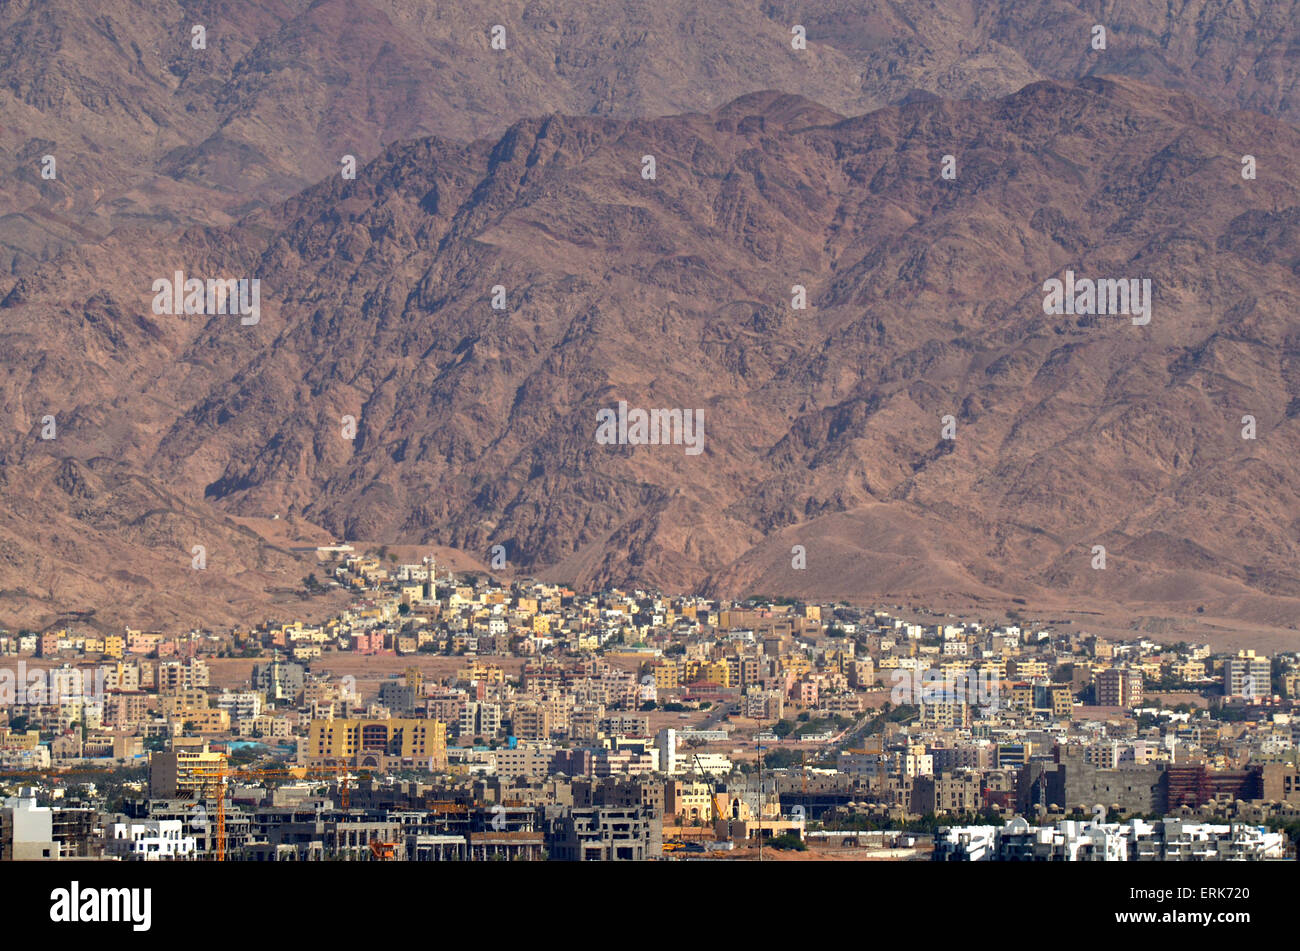 AQABA, JOR - APR 16 2015:Aqaba cityscape. Aqaba is the largest city and Jordan's only coastal city. It's - Stock Image